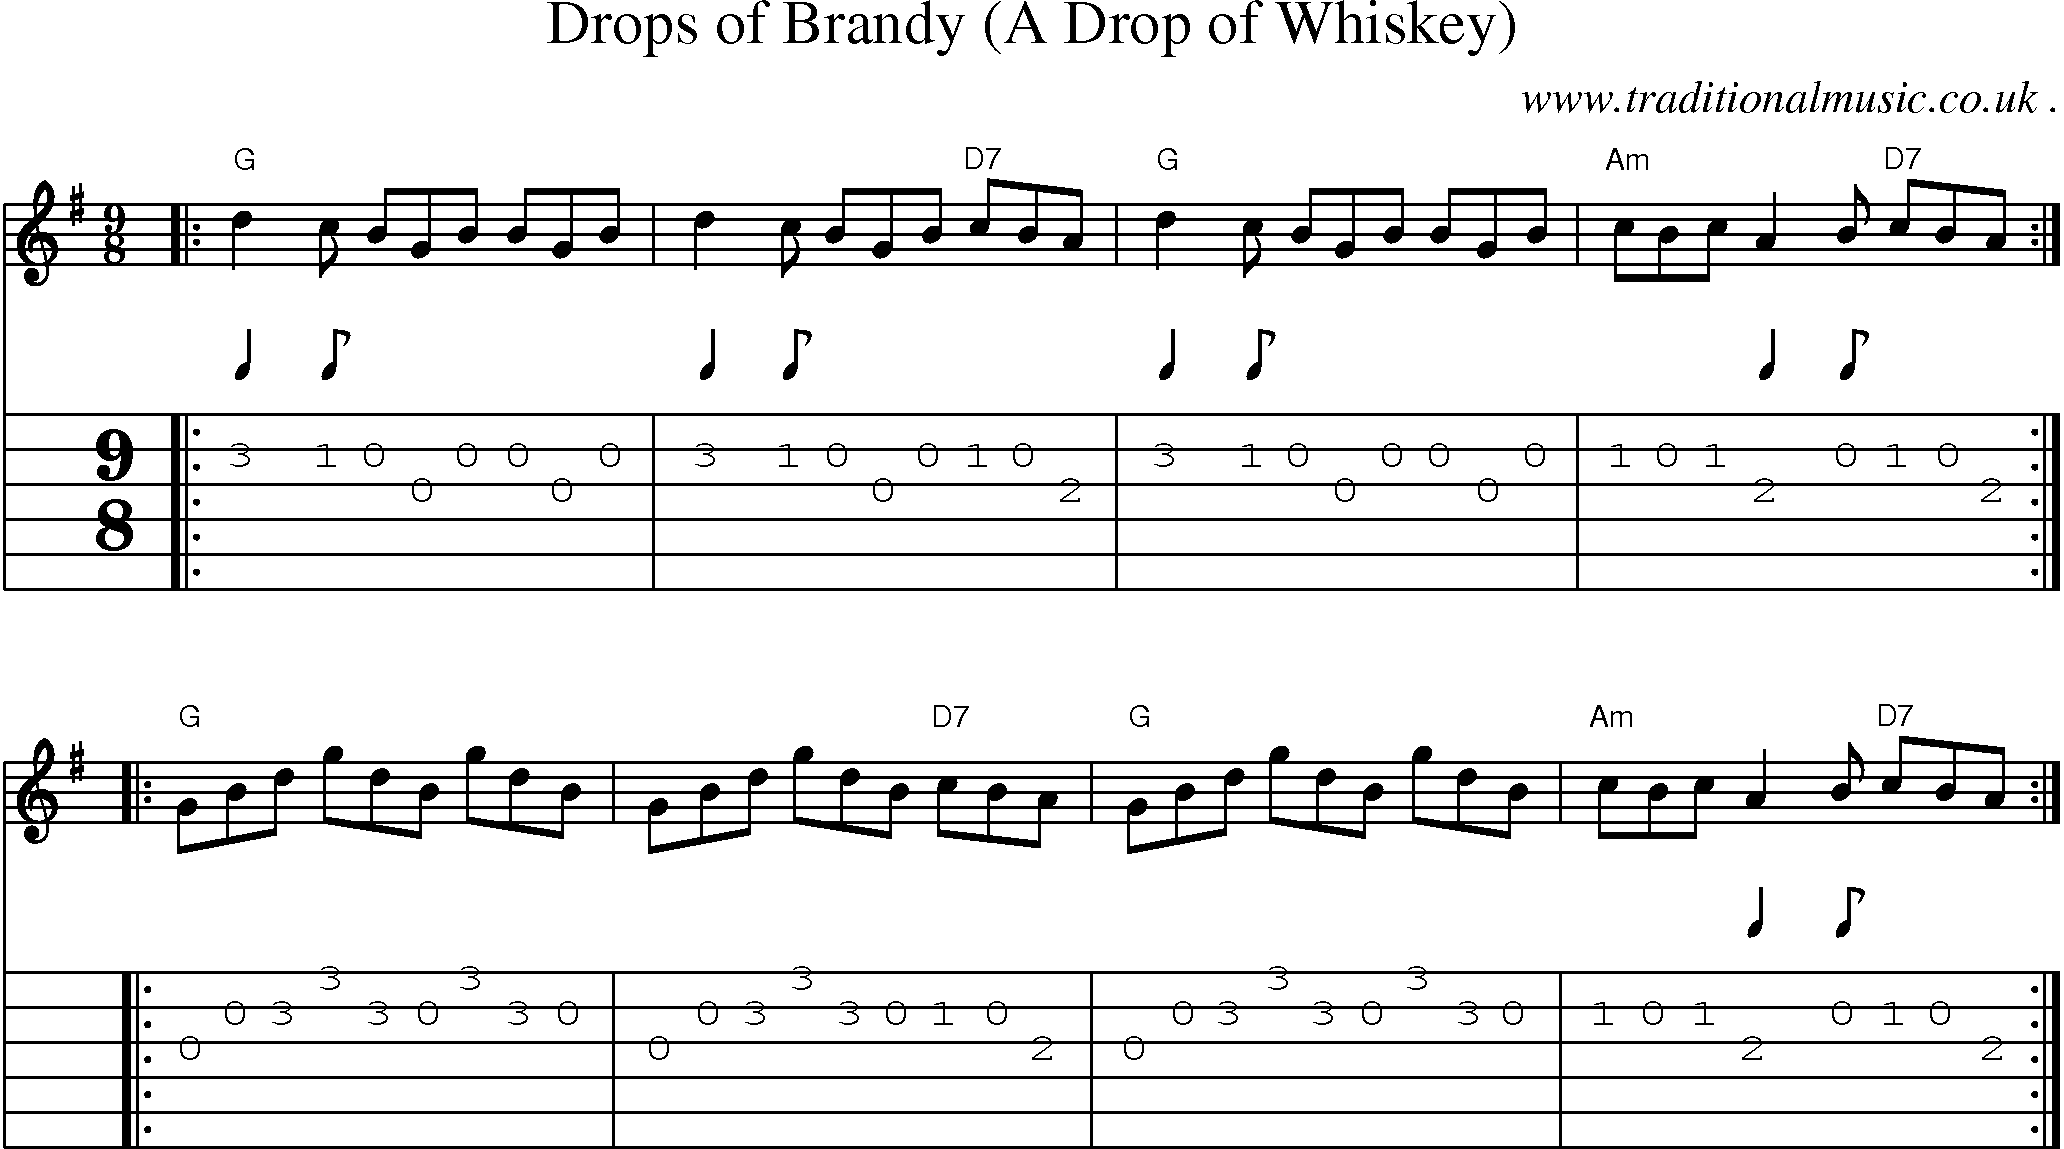 Guitar Chords For Drops